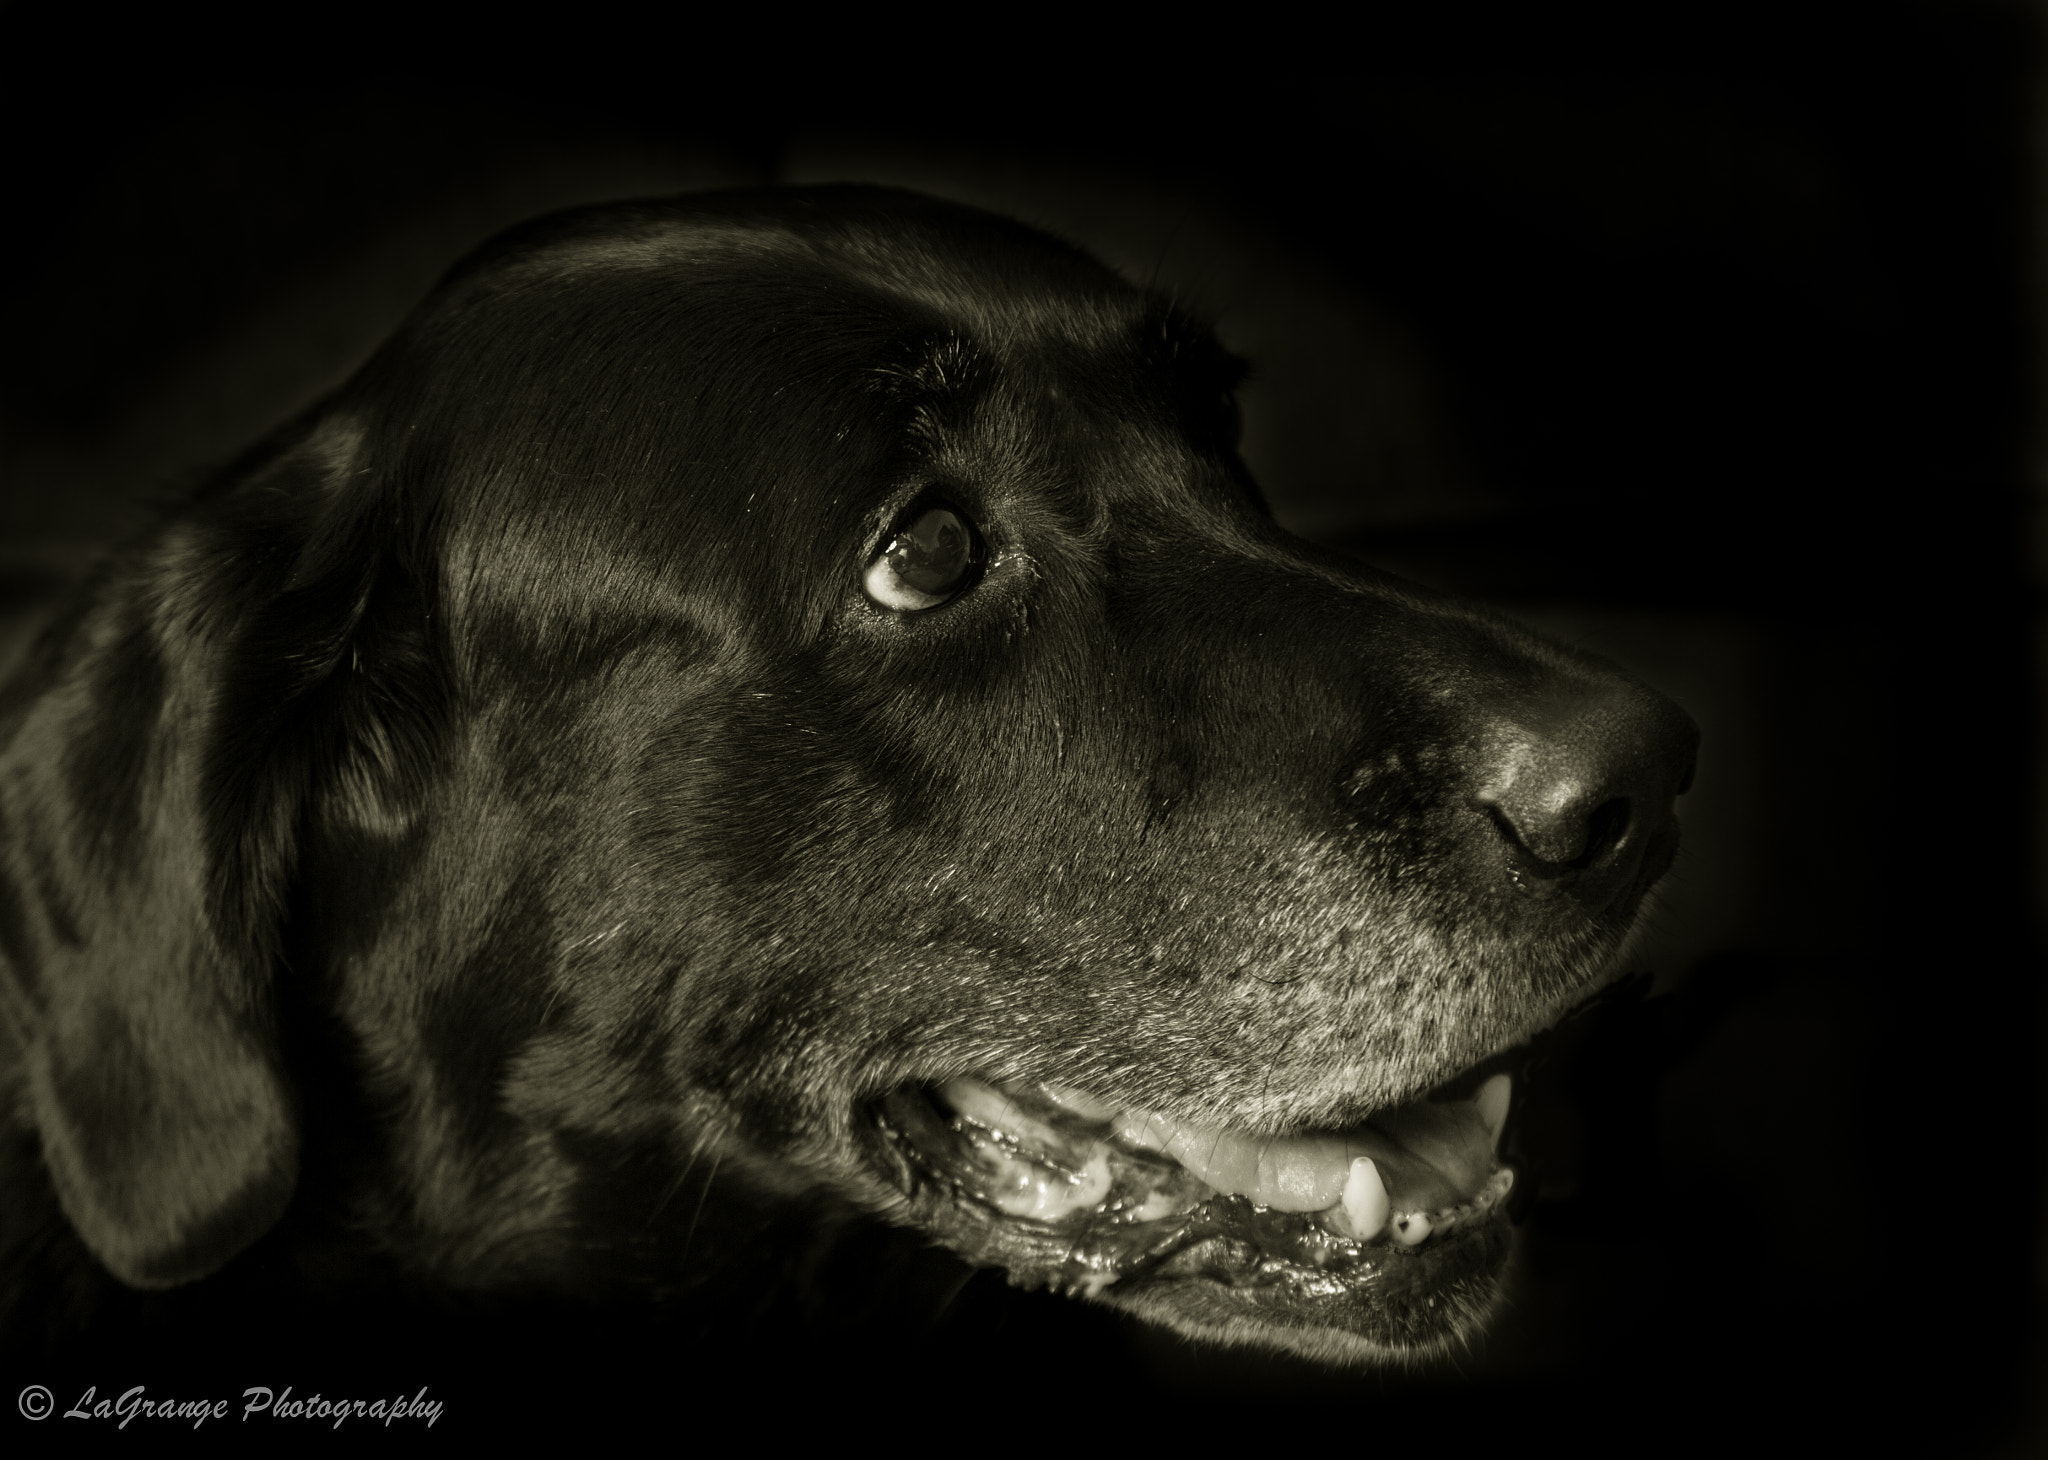 Photograph Old Dog by Michael LaGrange on 500px